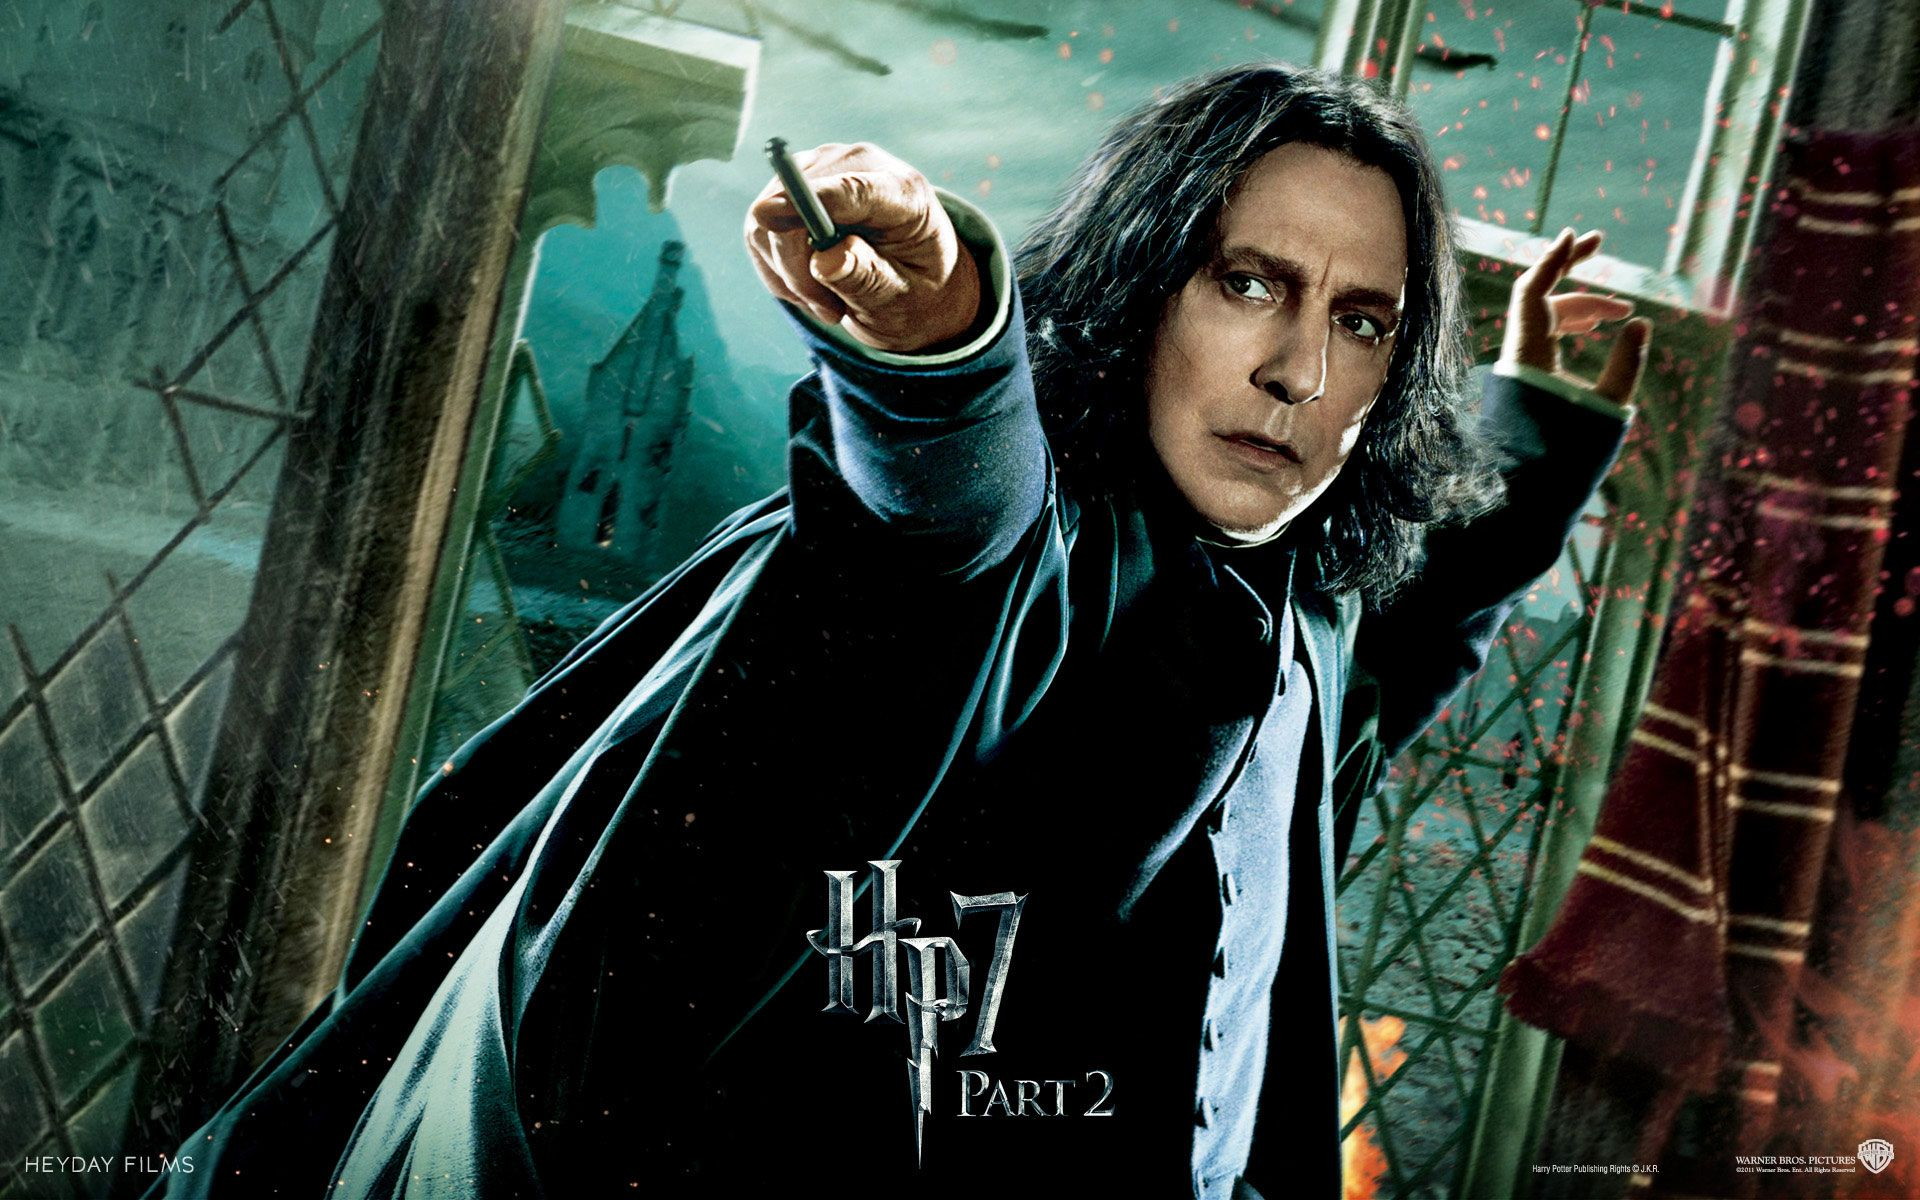 Watch Streaming Hd Harry Potter And The Deathly Hallows Part 2 Starring Daniel Radcliffe Emma Watson Rupert Grint Michael Gambon Harry Ron And Hermione S